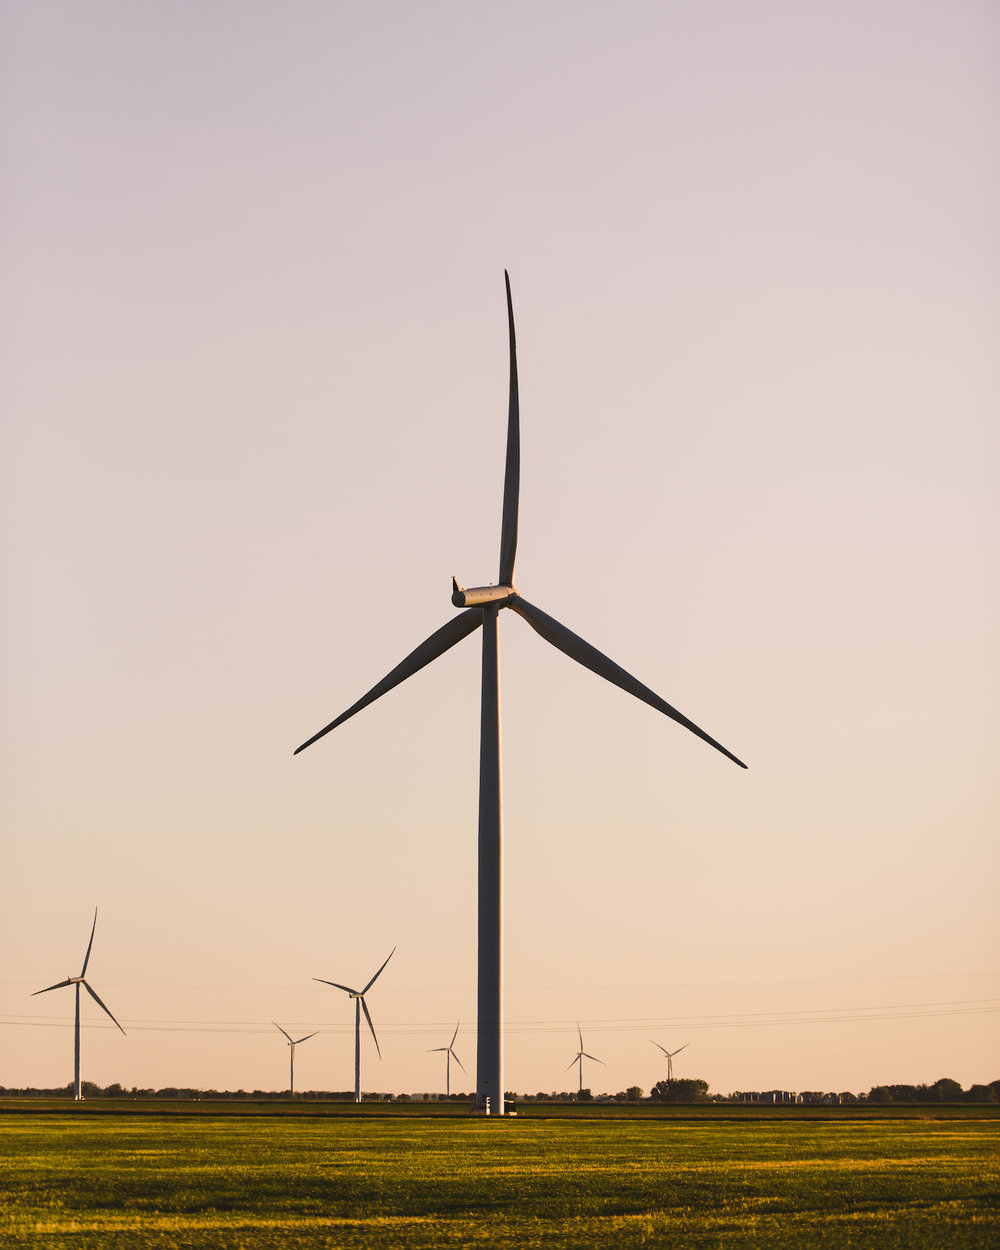 polar-visual-taylor-sheppard-photography-photo-video-motion-design-graphic-wind-turbine-emerson-stonewall-winnipeg-manitoba-farm-nature-landscape.jpg